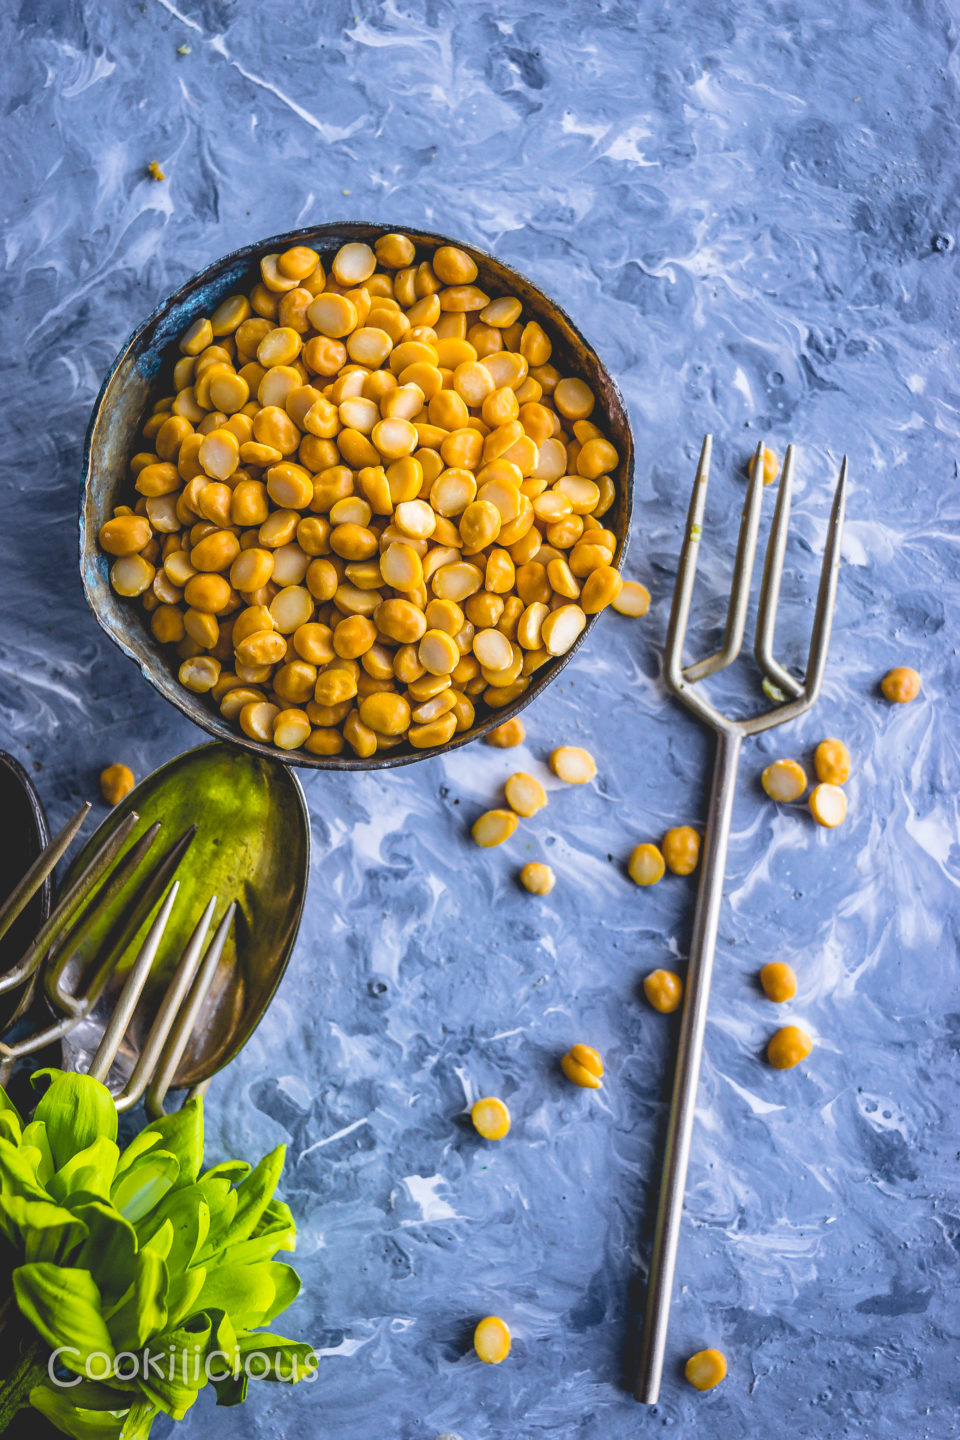 chana dal in a bowl with a fork next to it before soaking it to make Steamed Lentil Bafauri